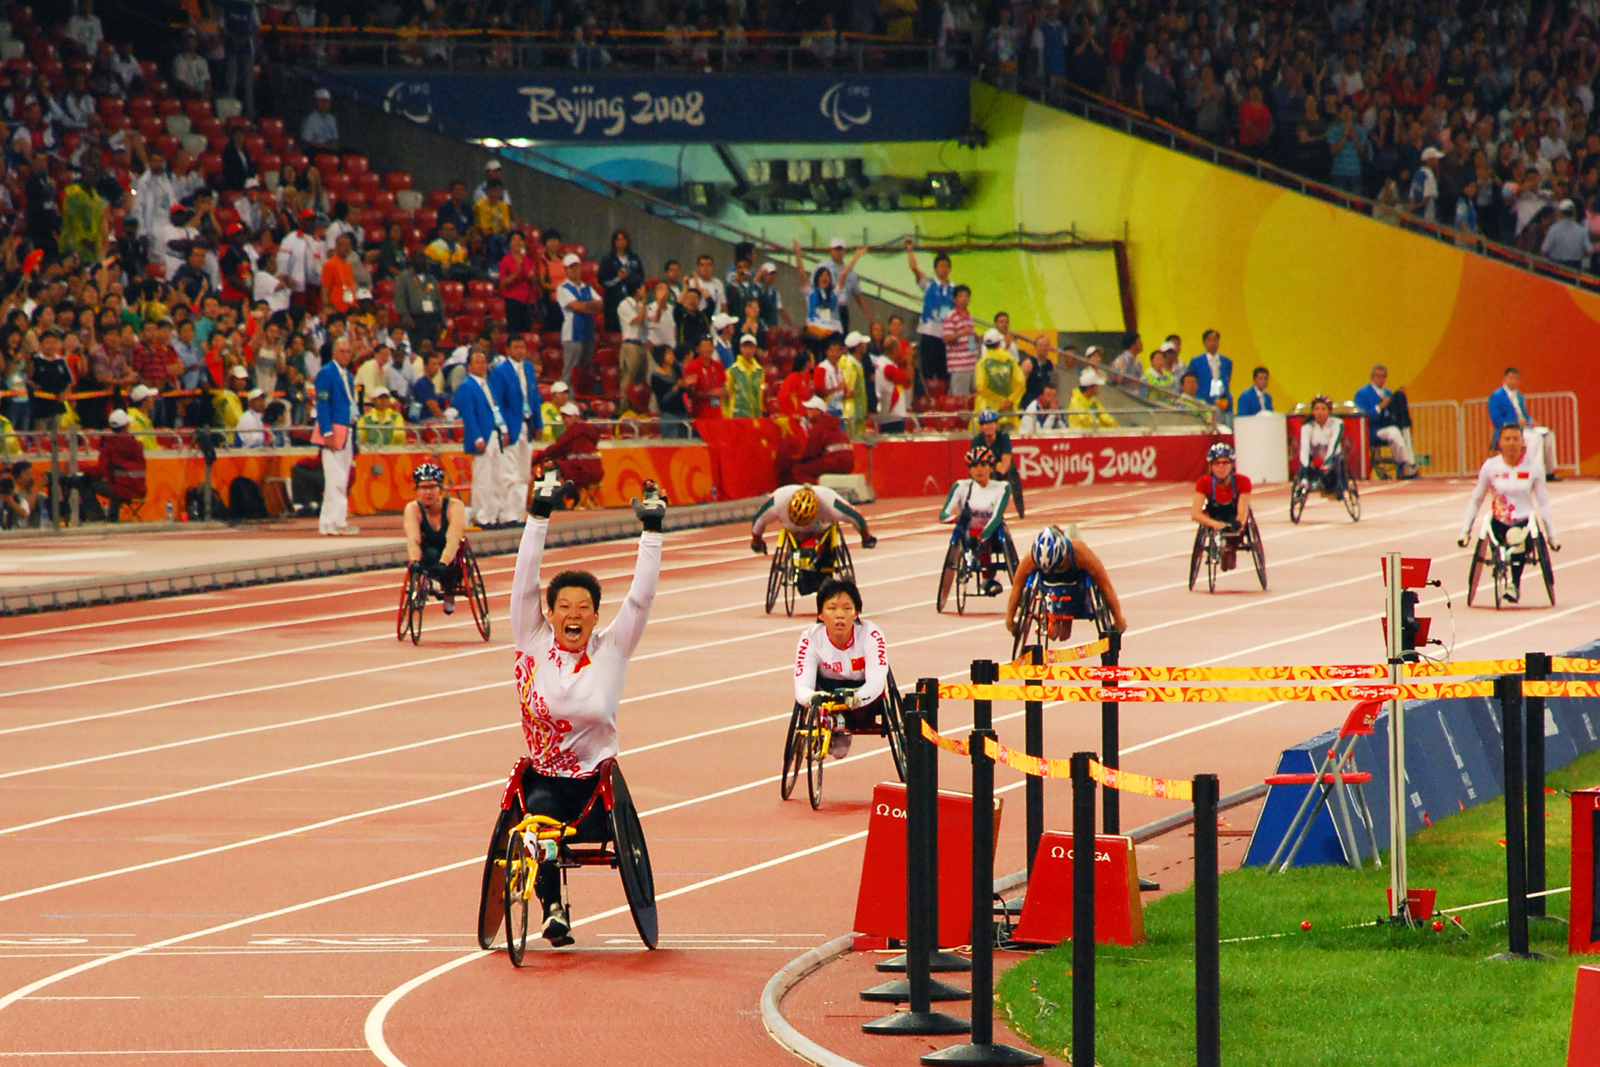 The 3 Most Beautiful Stories from the Paralympic Games